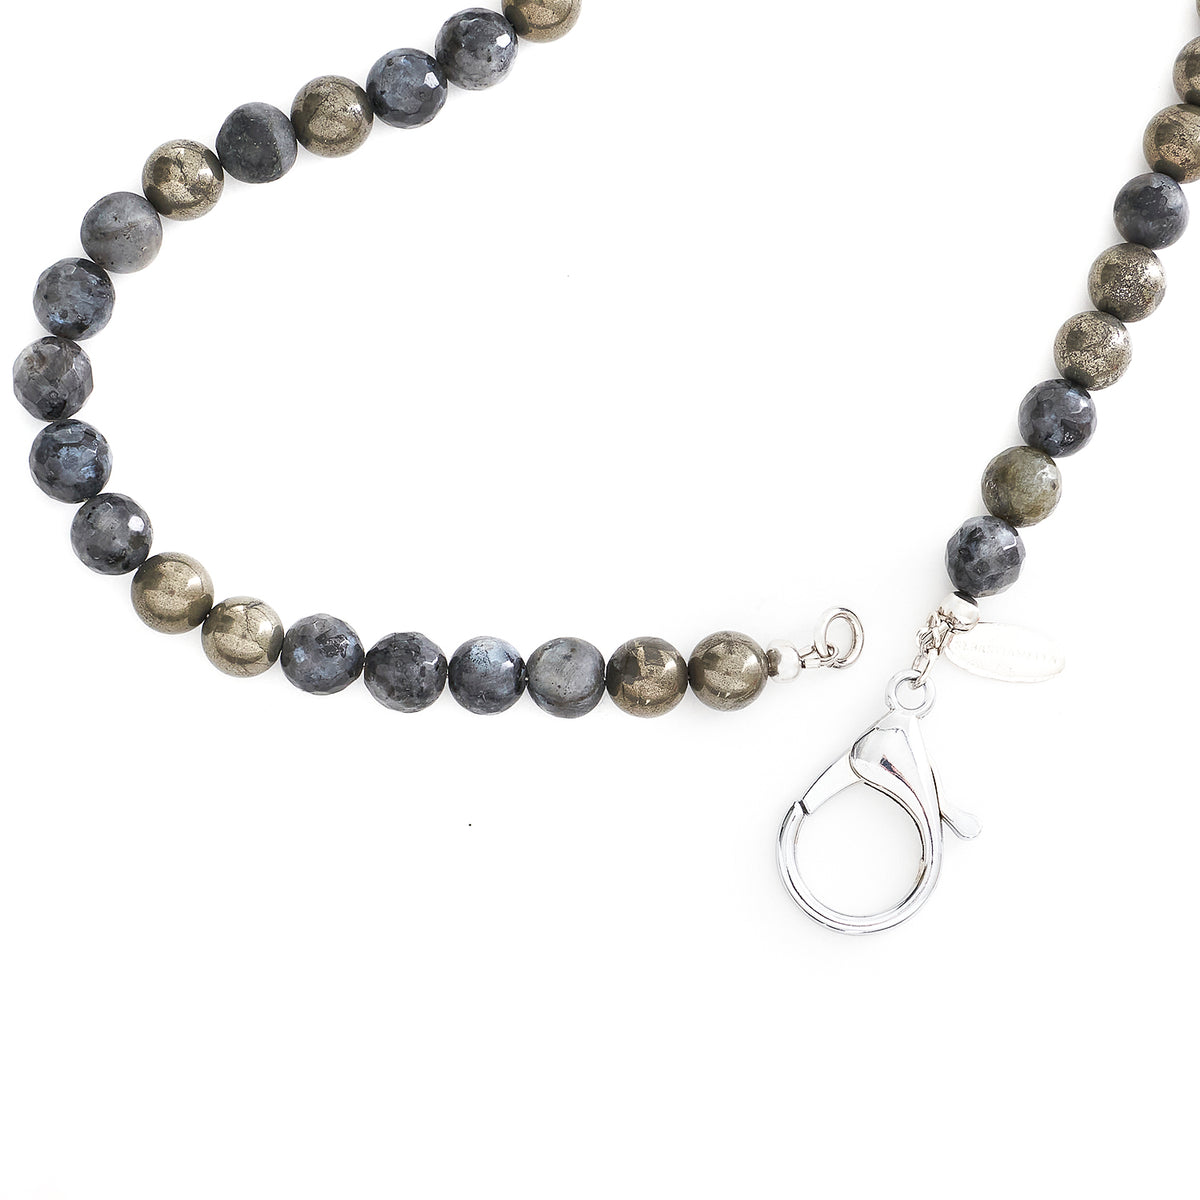 MIXED LABRADORITE MEDIUM NECKLACE